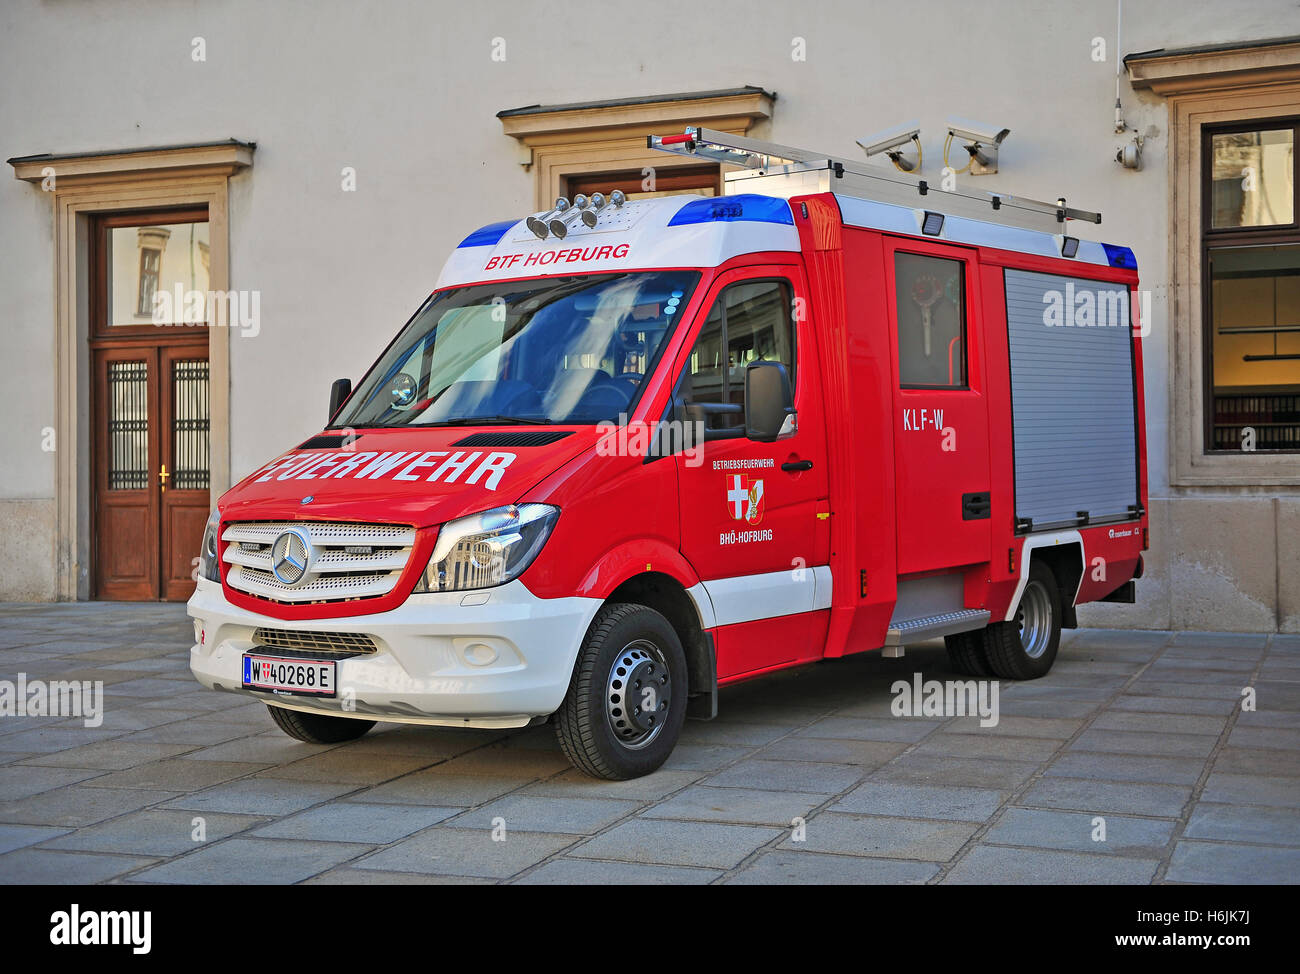 VIENNA, AUSTRIA - JUNE 6: Fire track in the street of Vienna downtown on June 6, 2016. - Stock Image